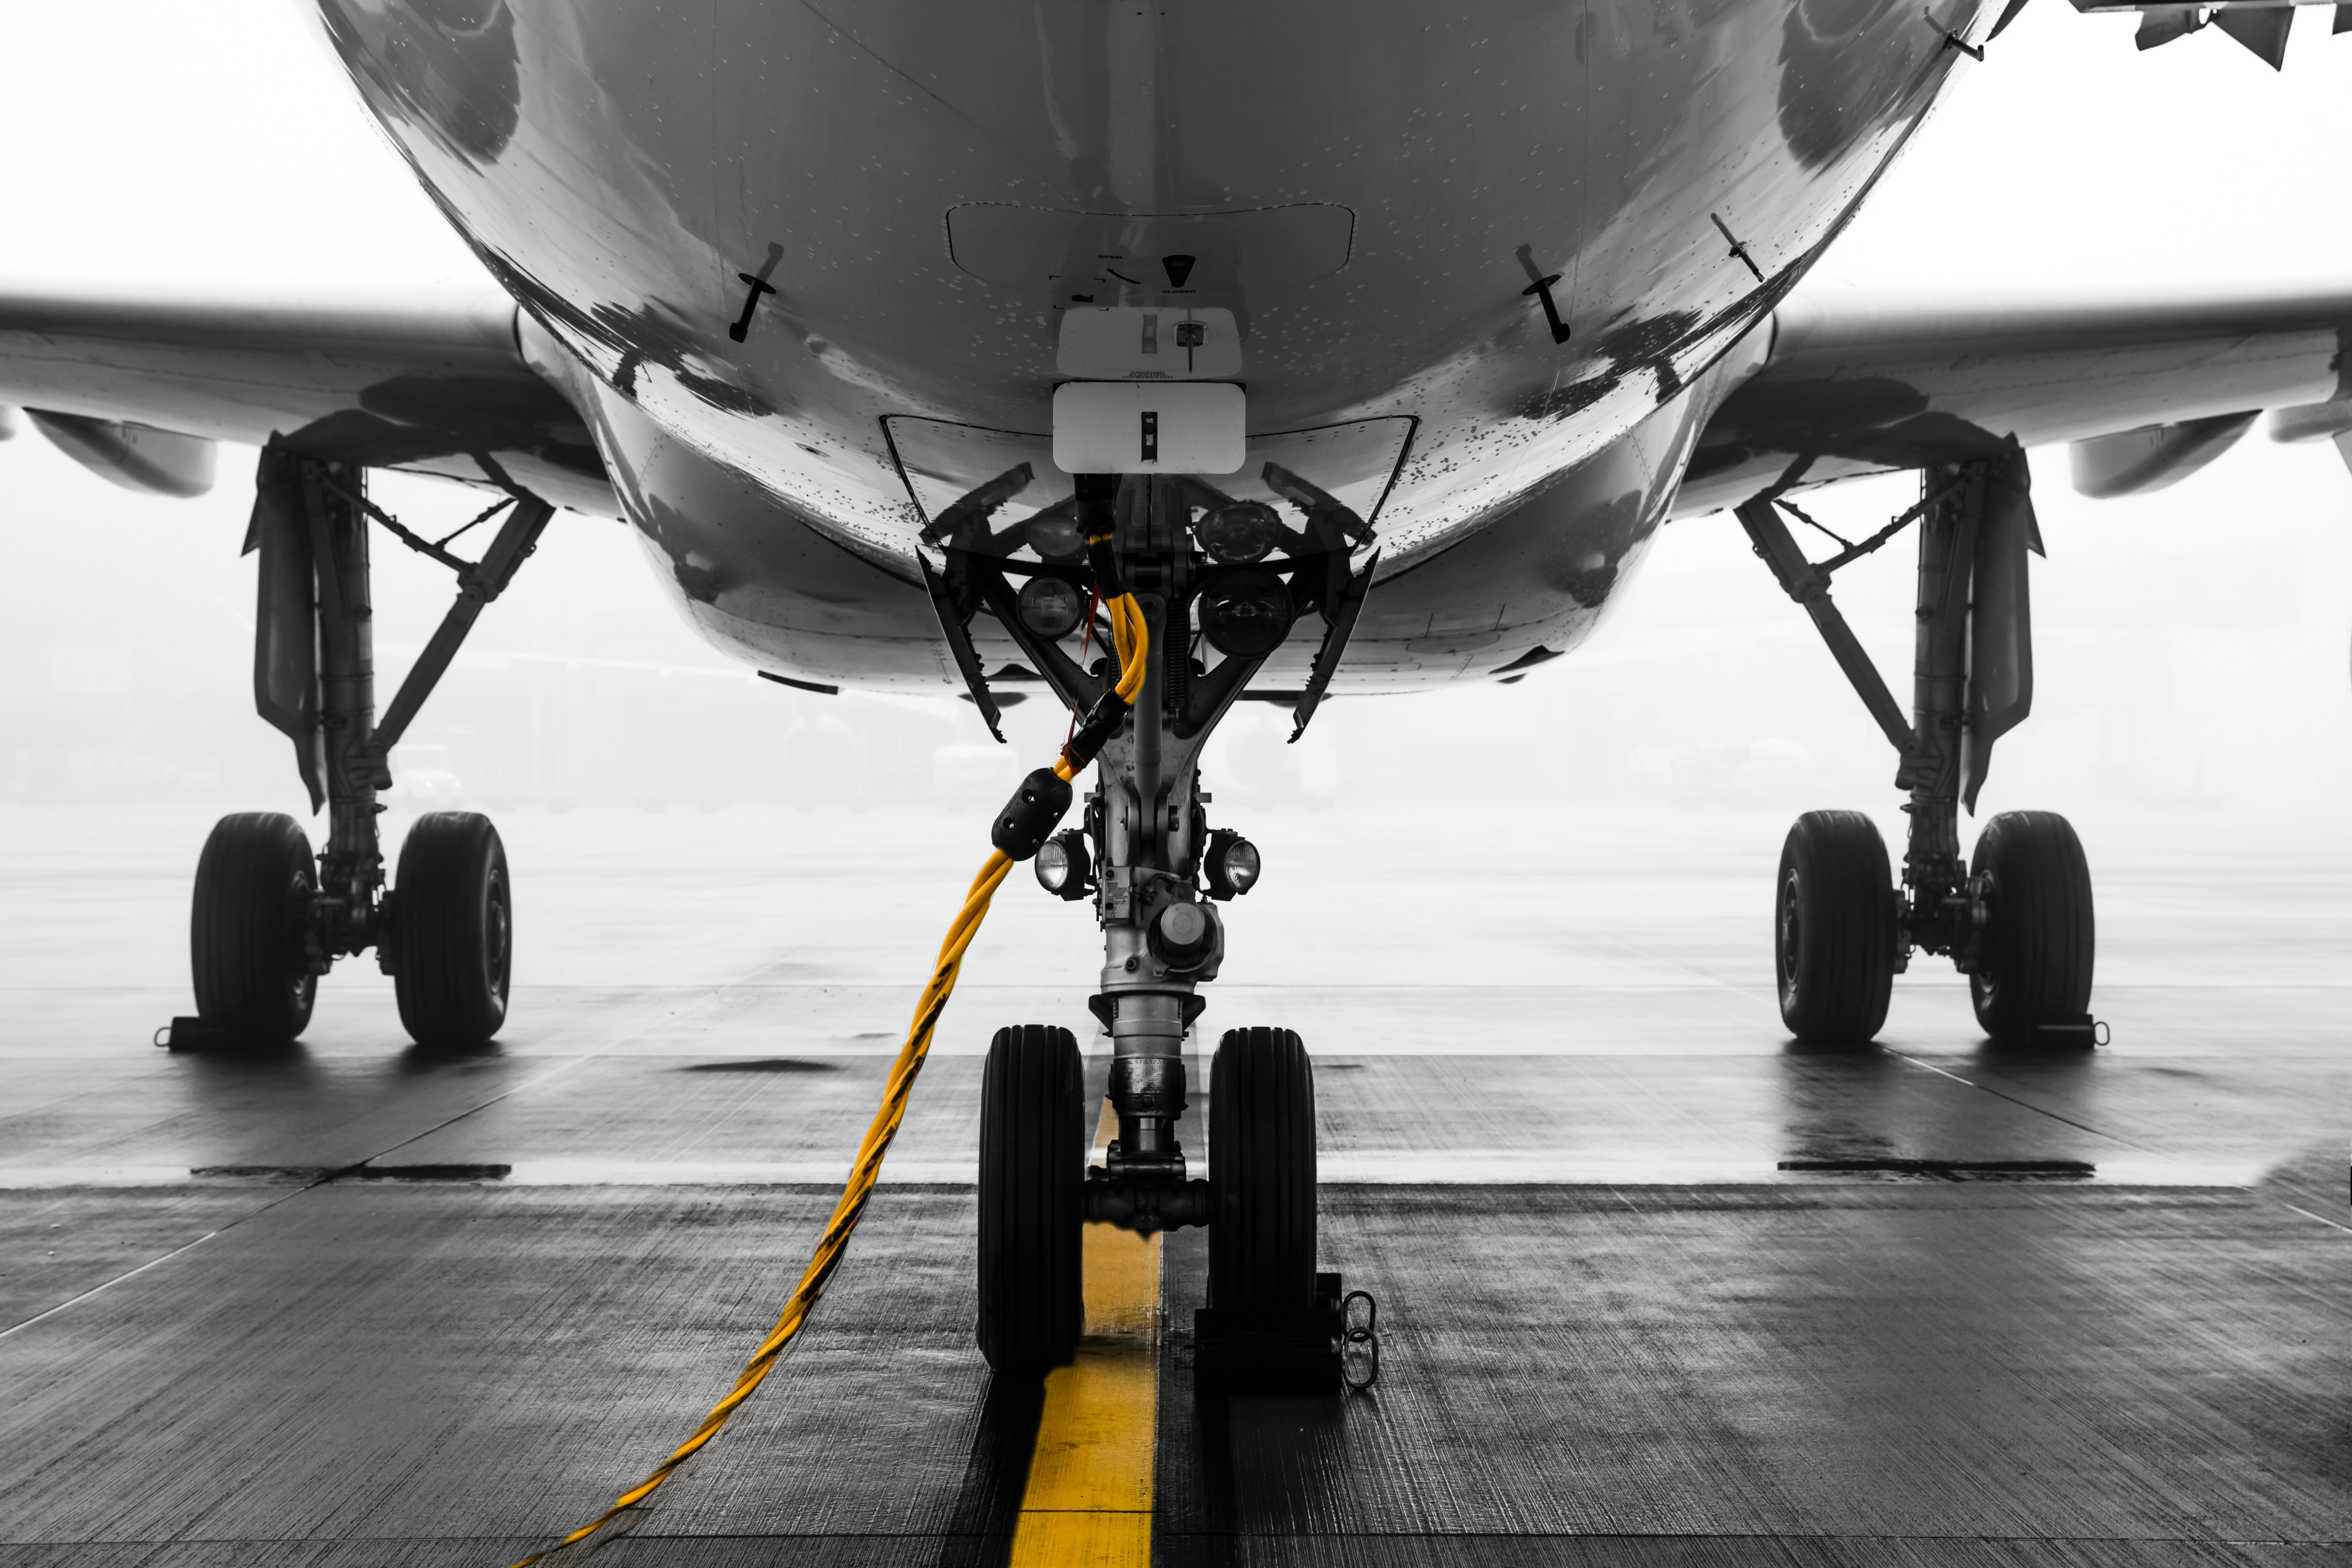 We helped a Singapore-based MRO client with forecasting the demand for maintenance services and optimize inventory for the best SLA and yet minimize investment in inventory.